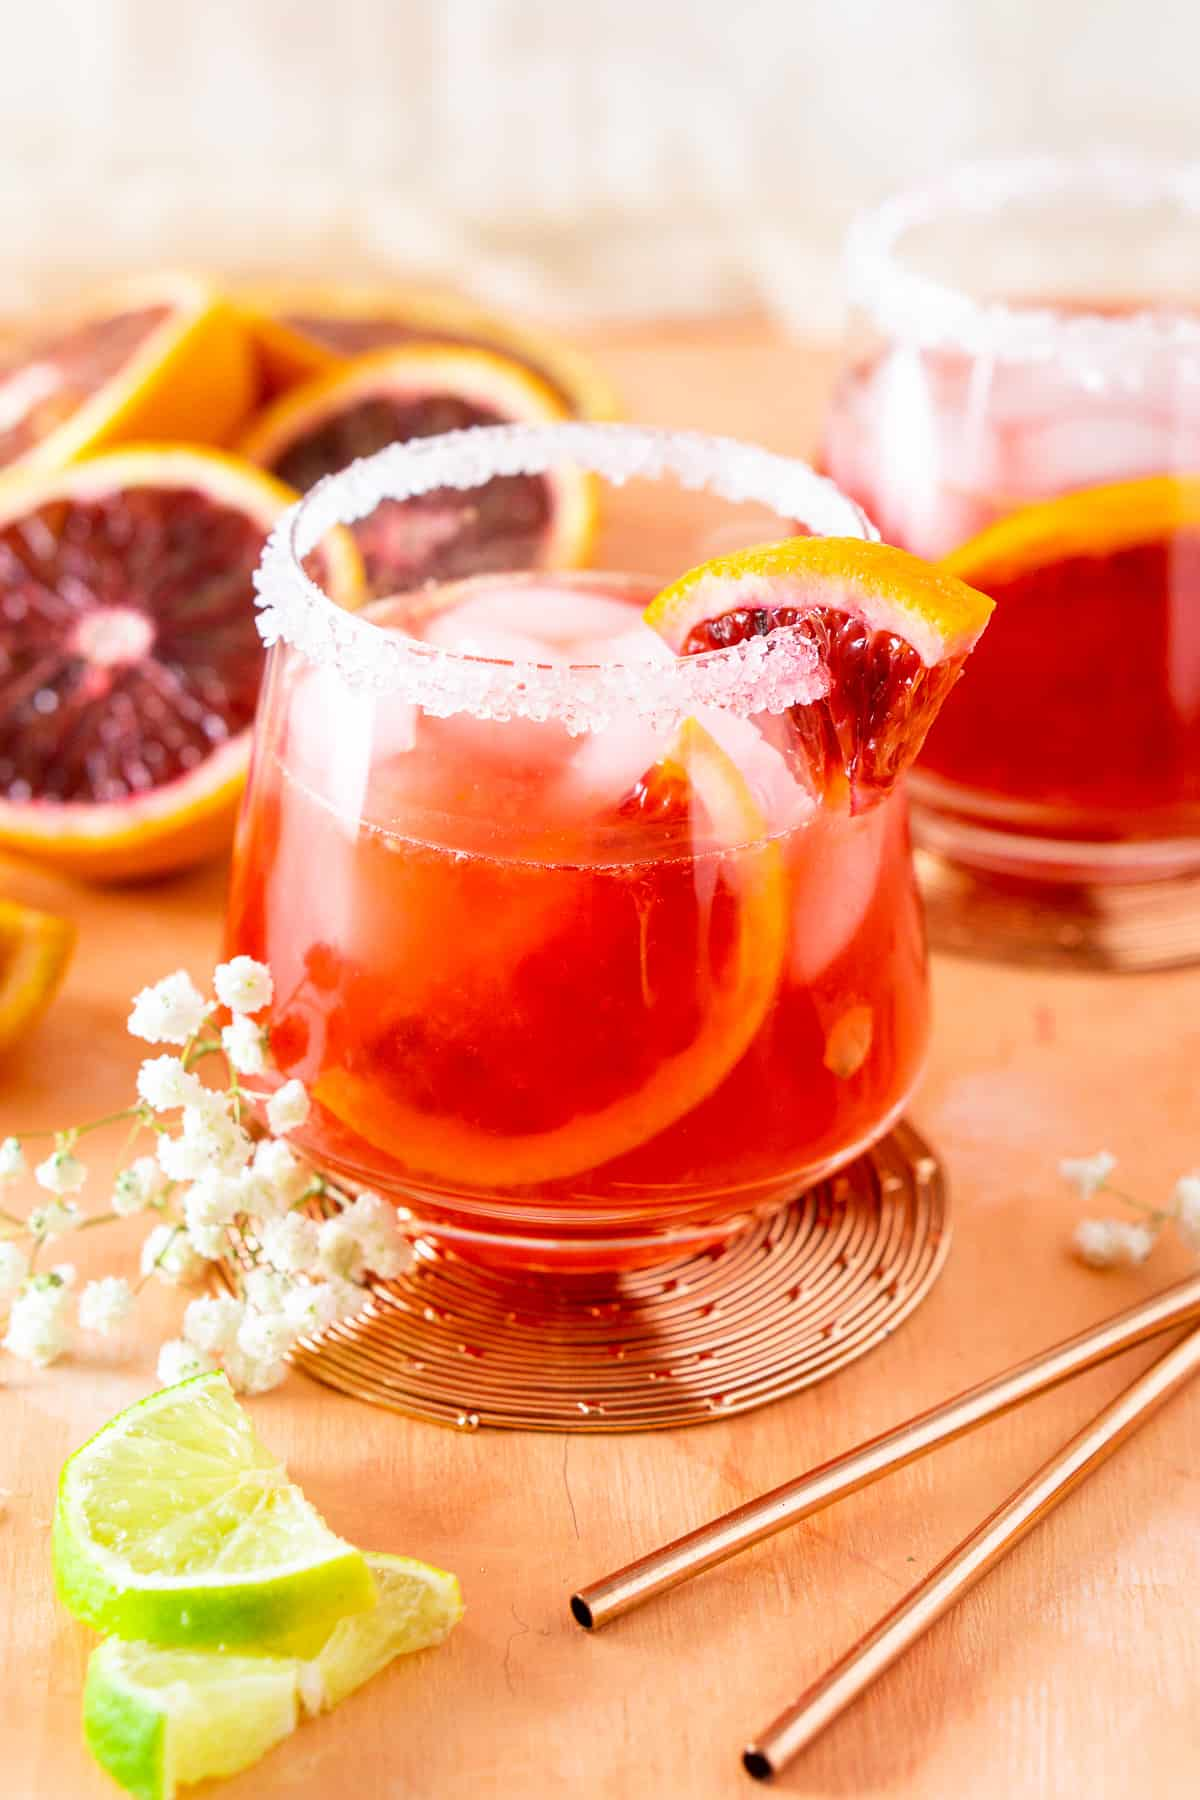 Two blood orange margaritas with cut-up blood oranges and lime slices.